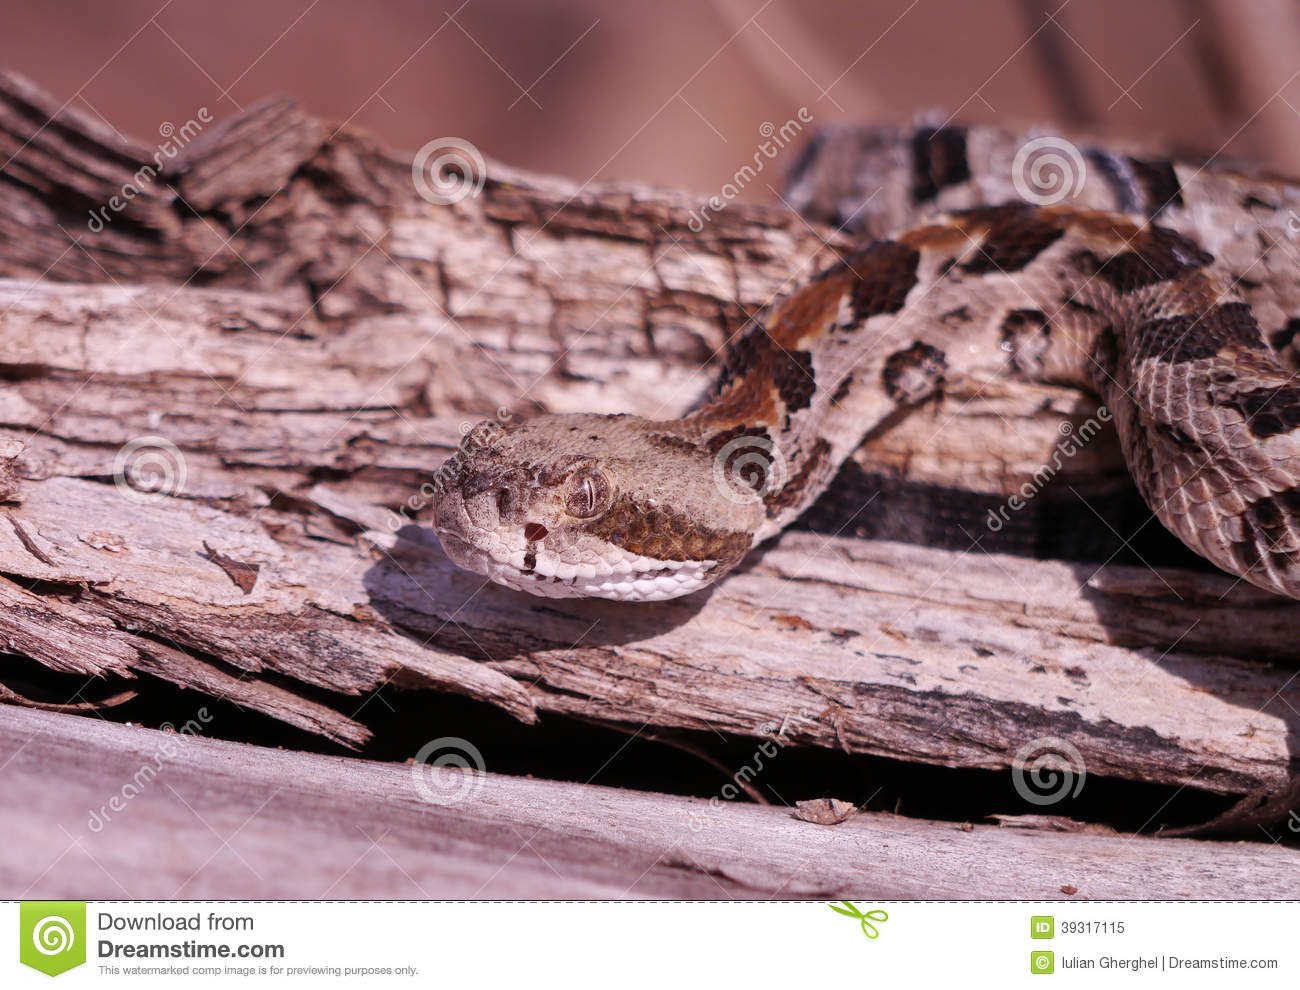 Timber Rattlesnake Stock Photo - Image: 39317115